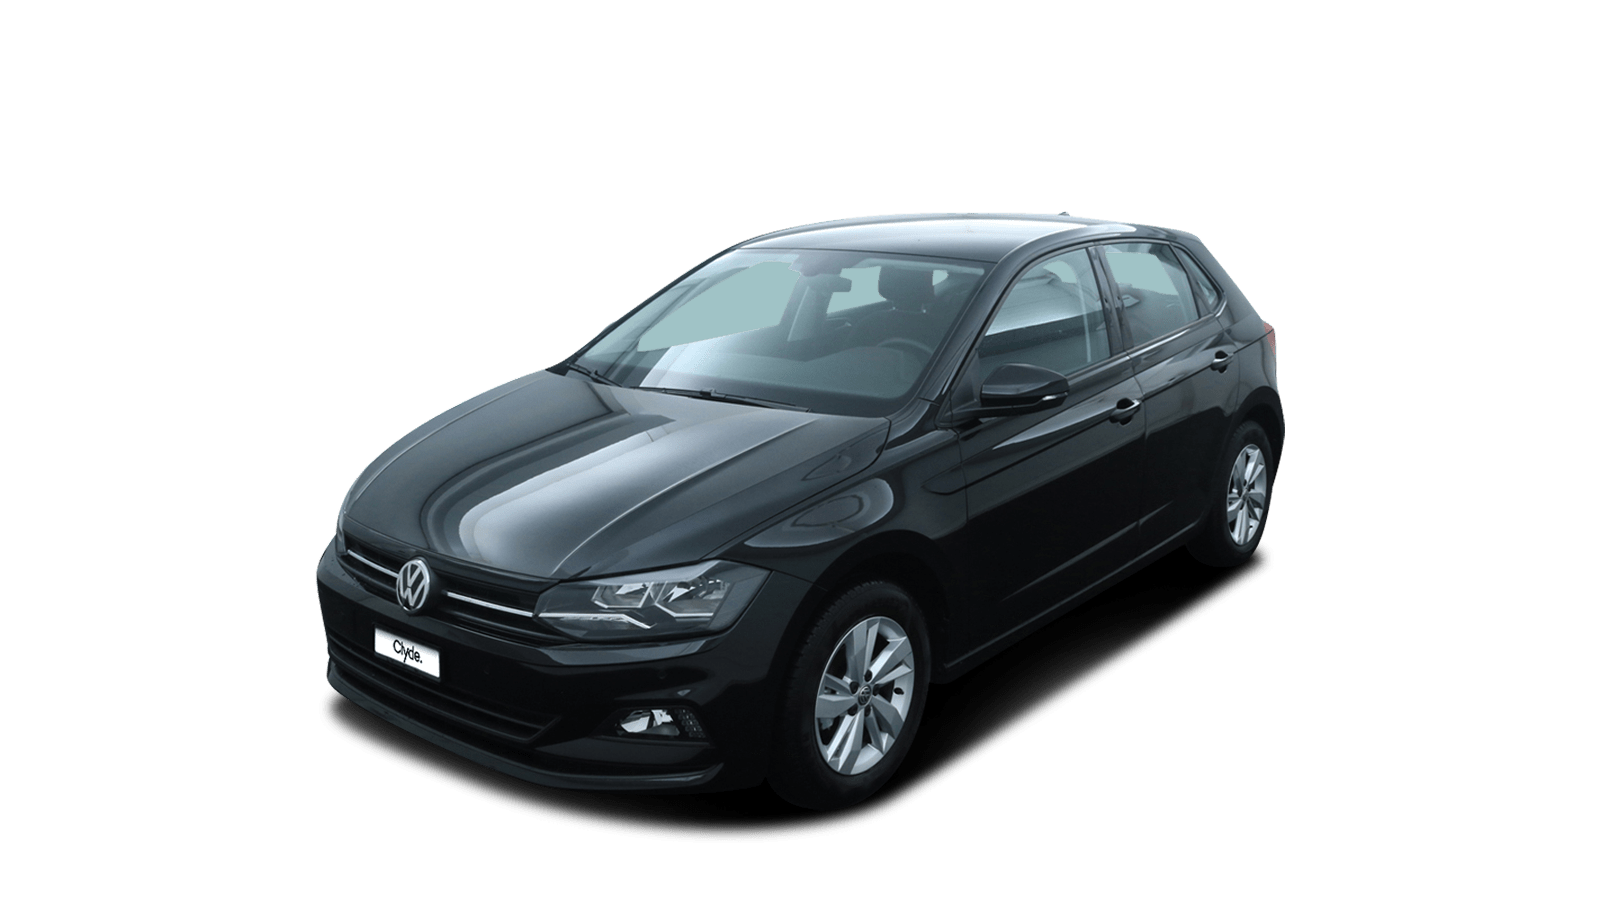 VW Polo Black front - Clyde car subscription